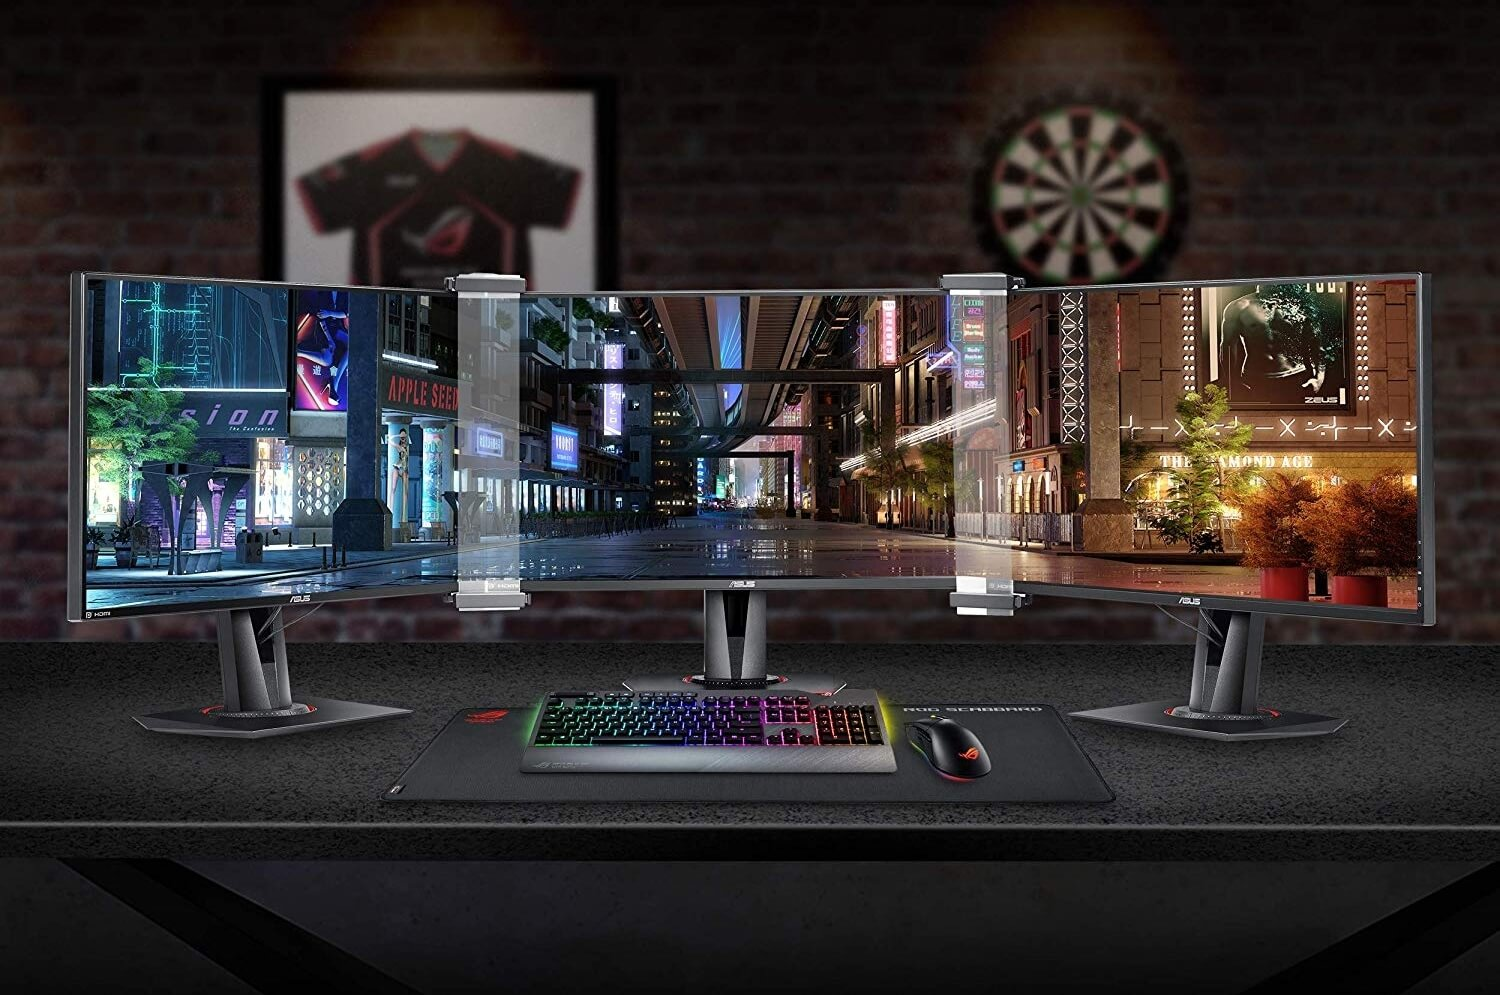 Asus' bezel-eliminating monitor kit is finally available to purchase